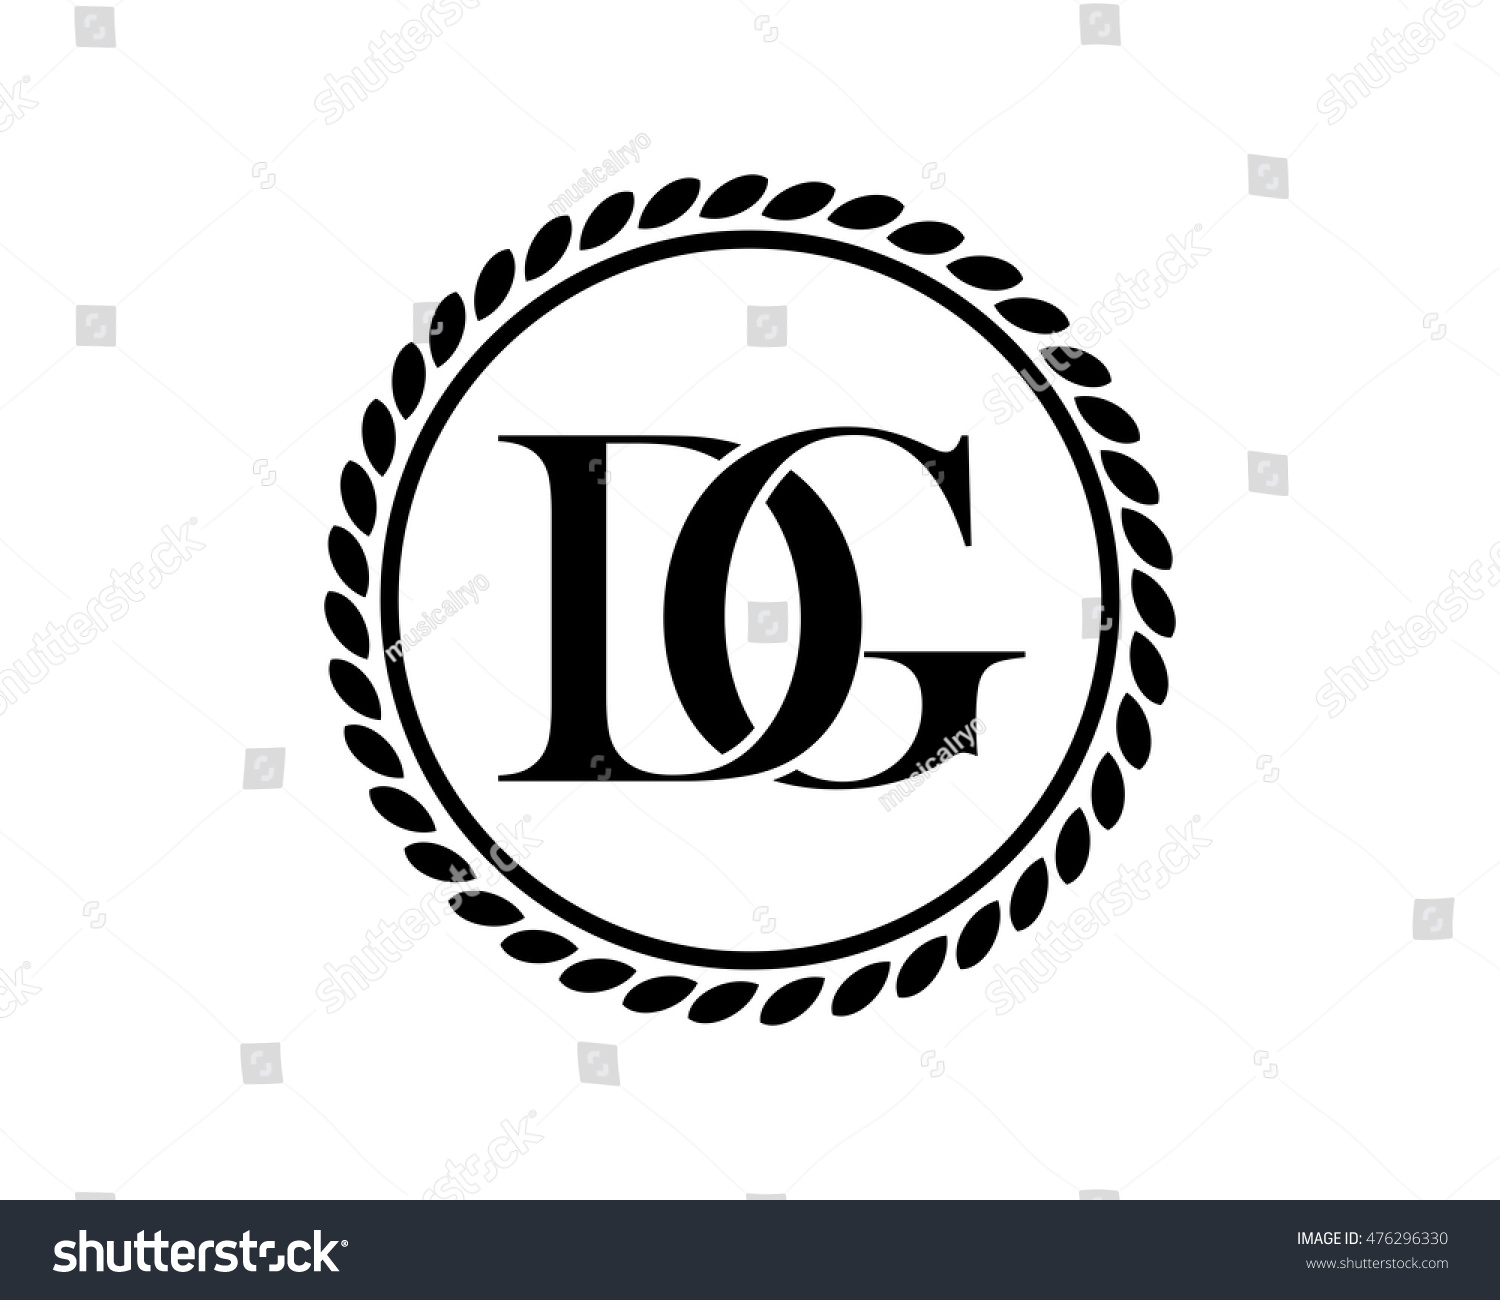 d g black initial letter typography stock vector royalty free Gray G Logo d and g black initial letter typography typeface typeset logotype alphabet image vector icon